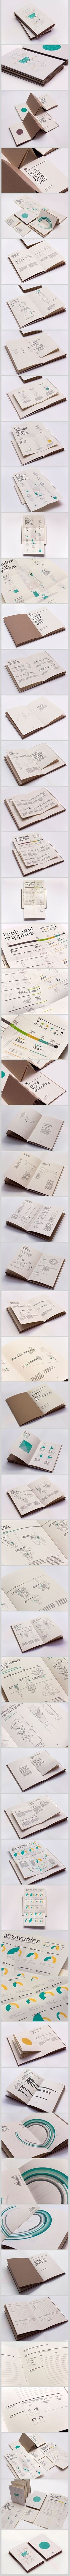 Window Farms: Information Design Book by Jiani Lu on Béhance | LAYOUT in Editorial Design